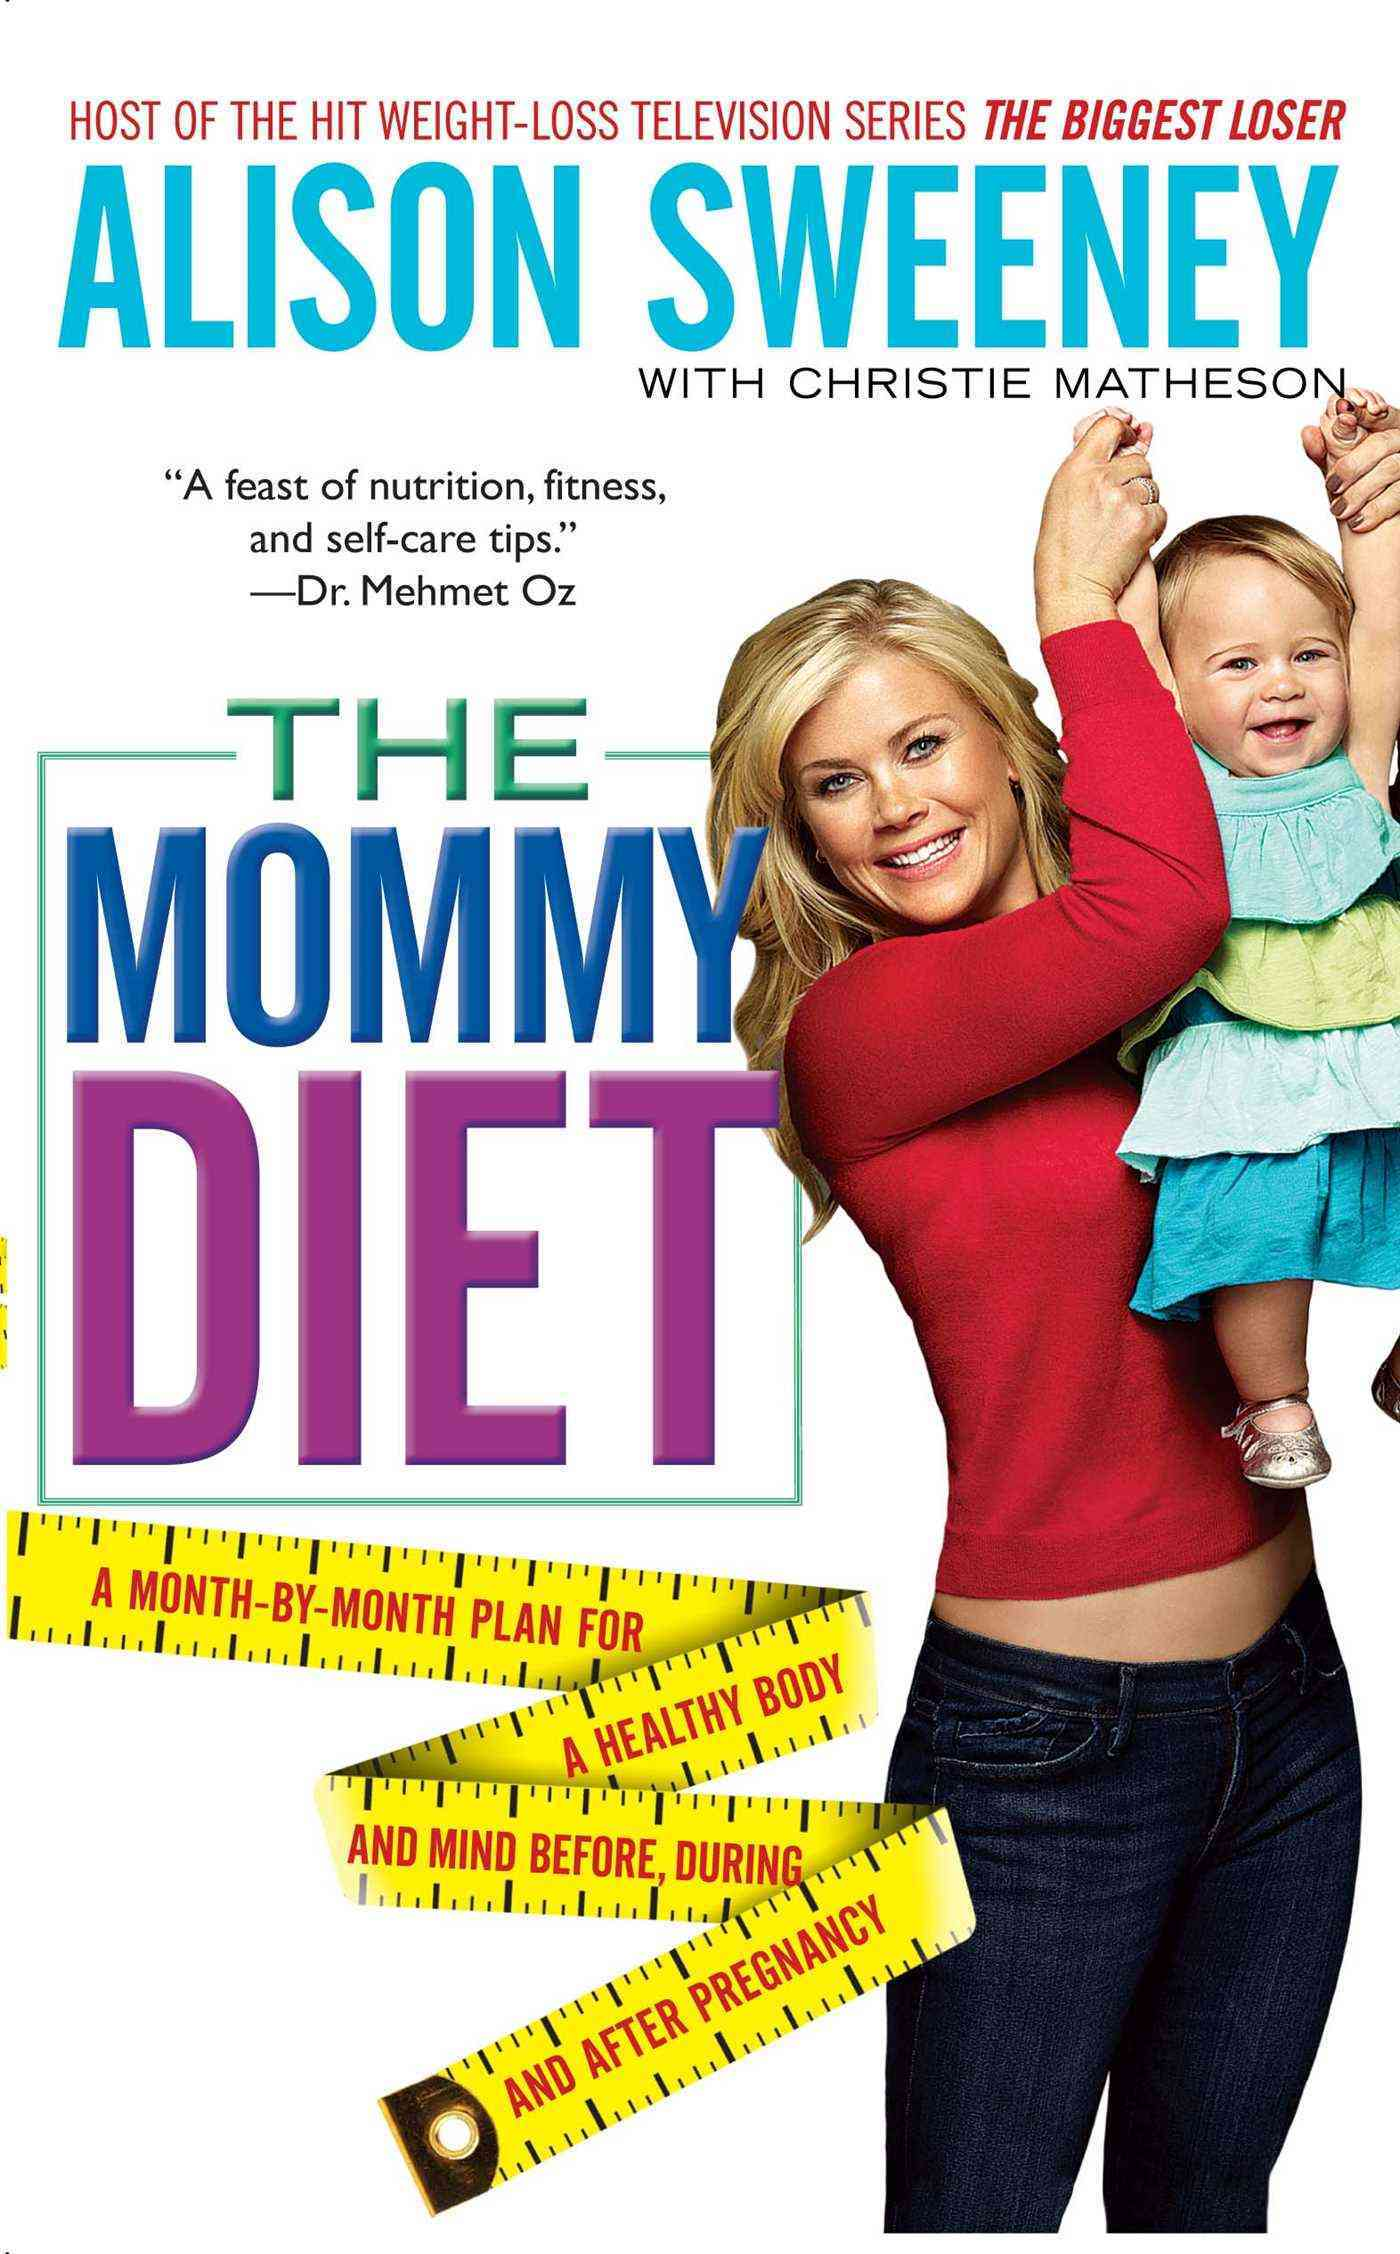 The Mommy Diet: A Month-by-month Plan for a Healthy Body and Mind Before, During, and After Pregnancy (Paperback)